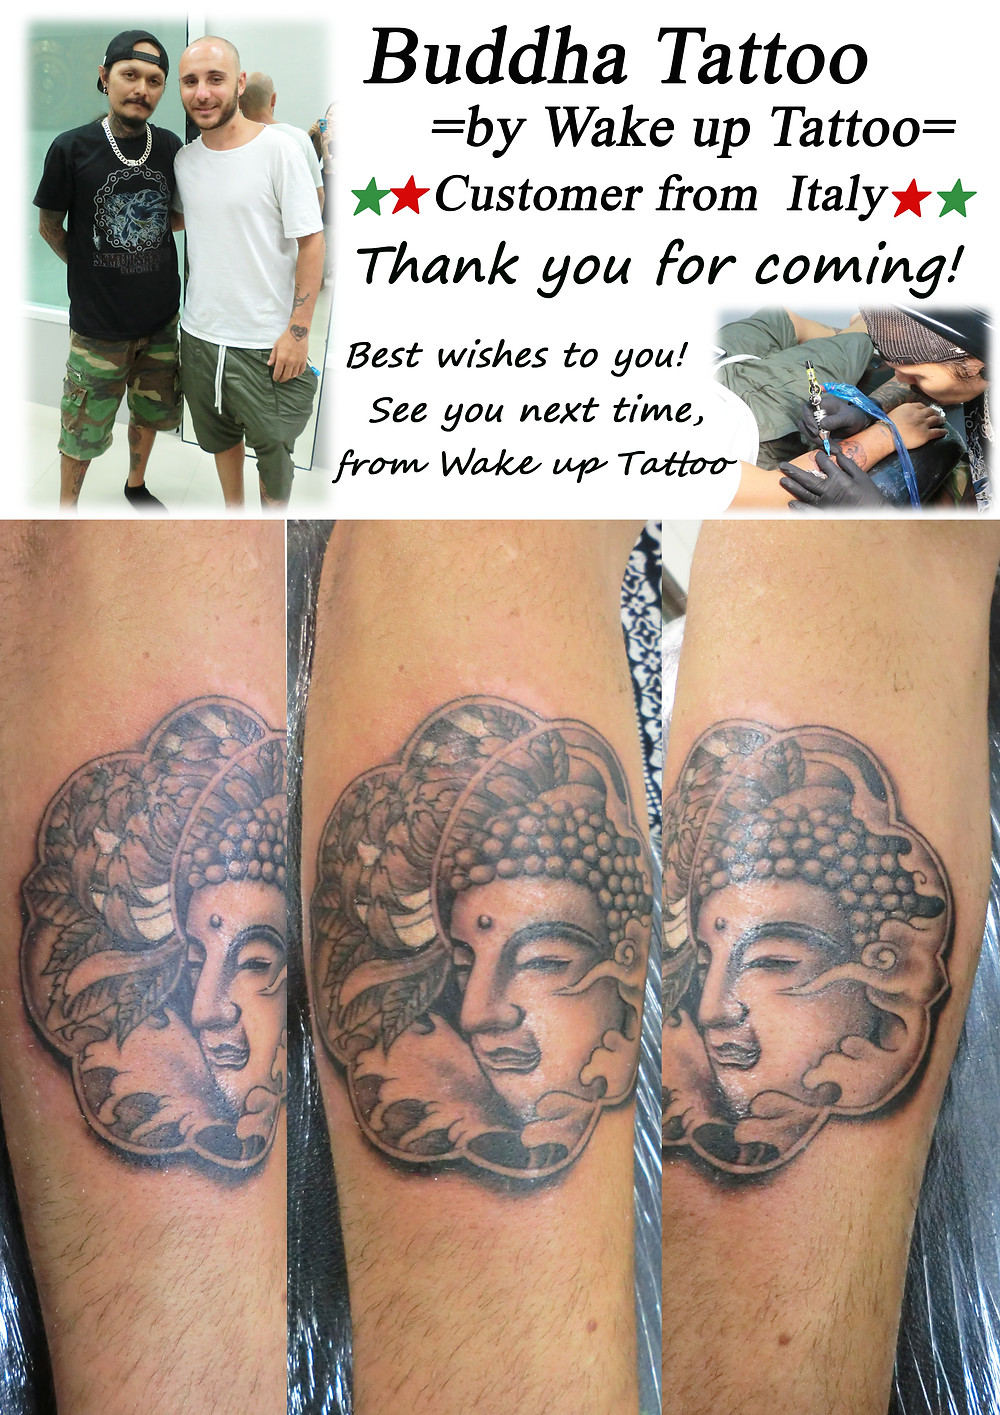 My first work for you by Wake up Tattoo Phuket